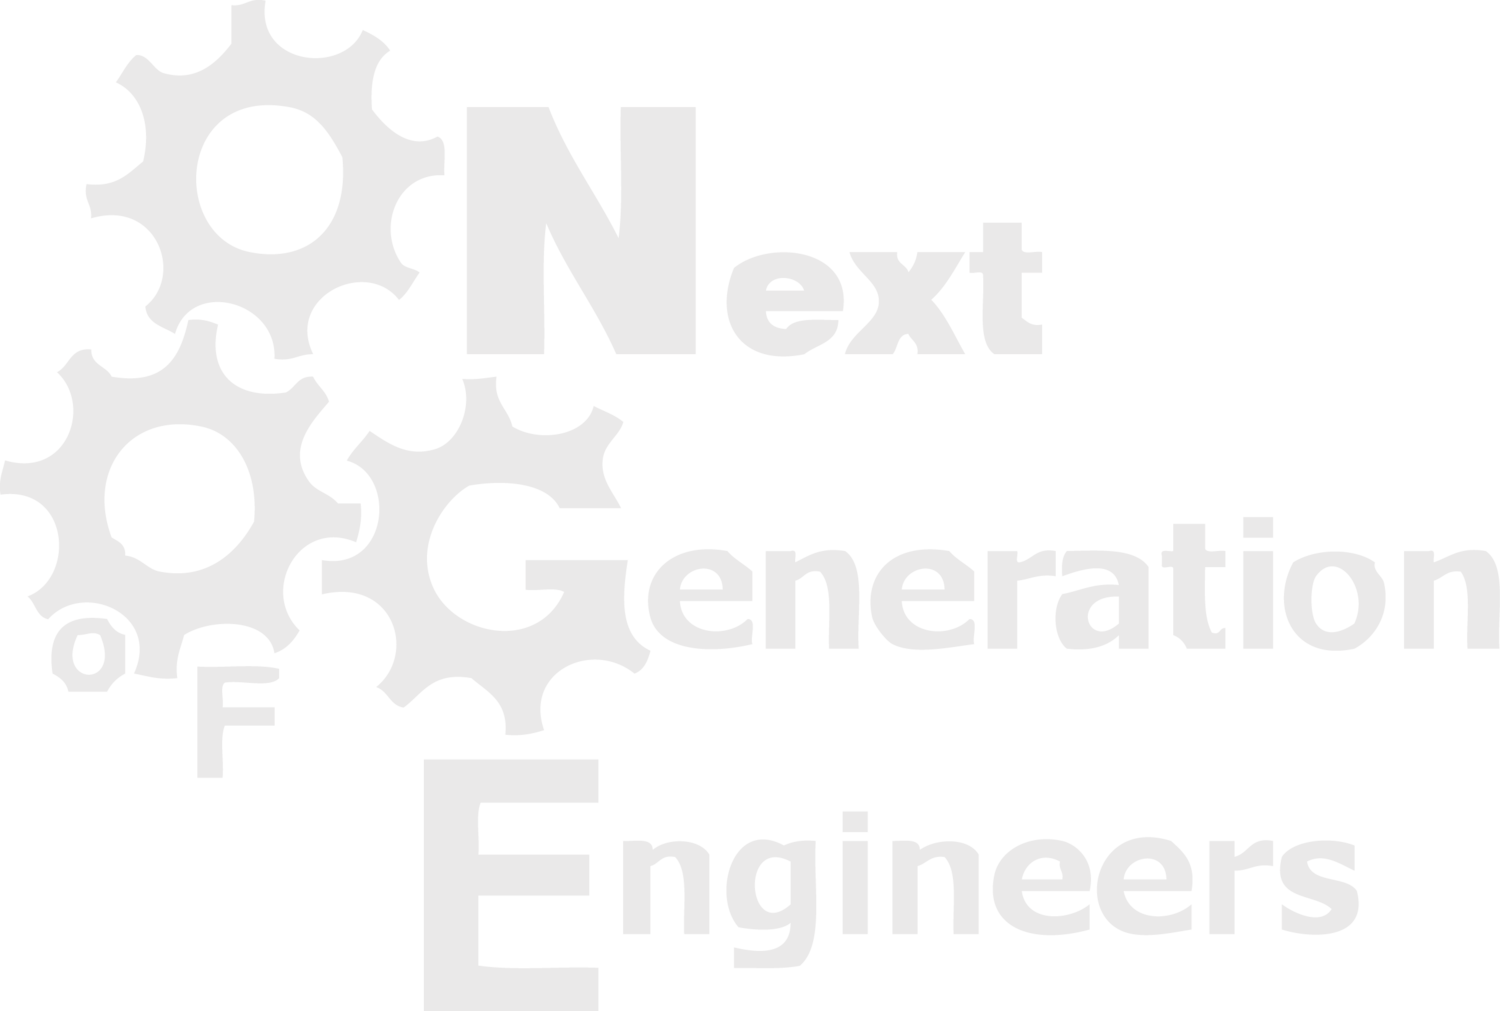 Next Generation of Engineers